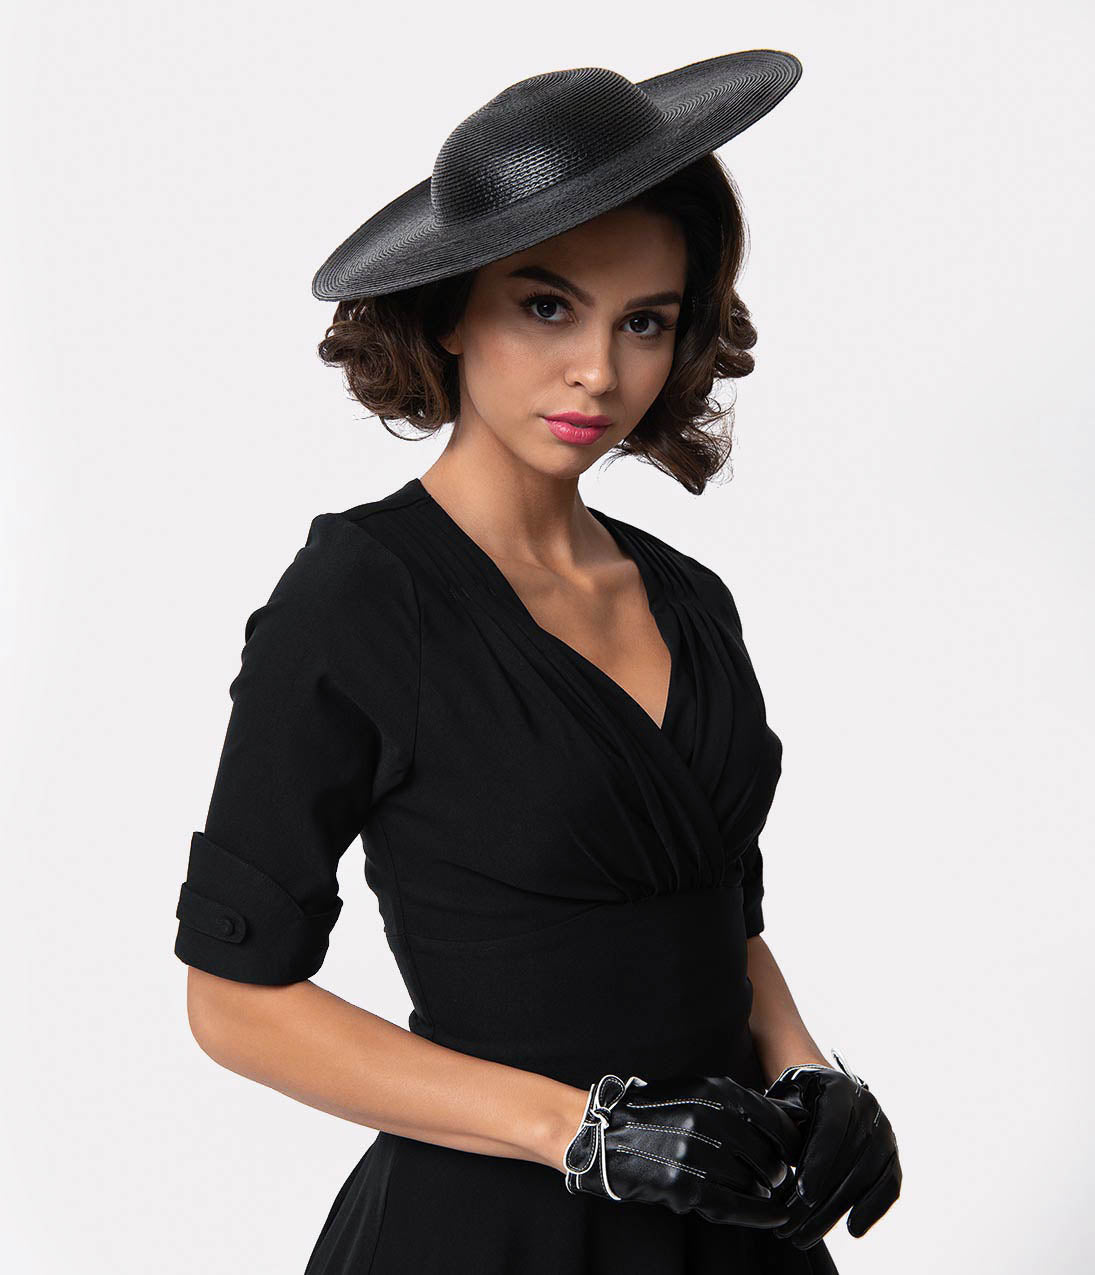 1950s Women's Hat Styles & History Vintage Style Black Straw Headband Disc Hat $38.00 AT vintagedancer.com